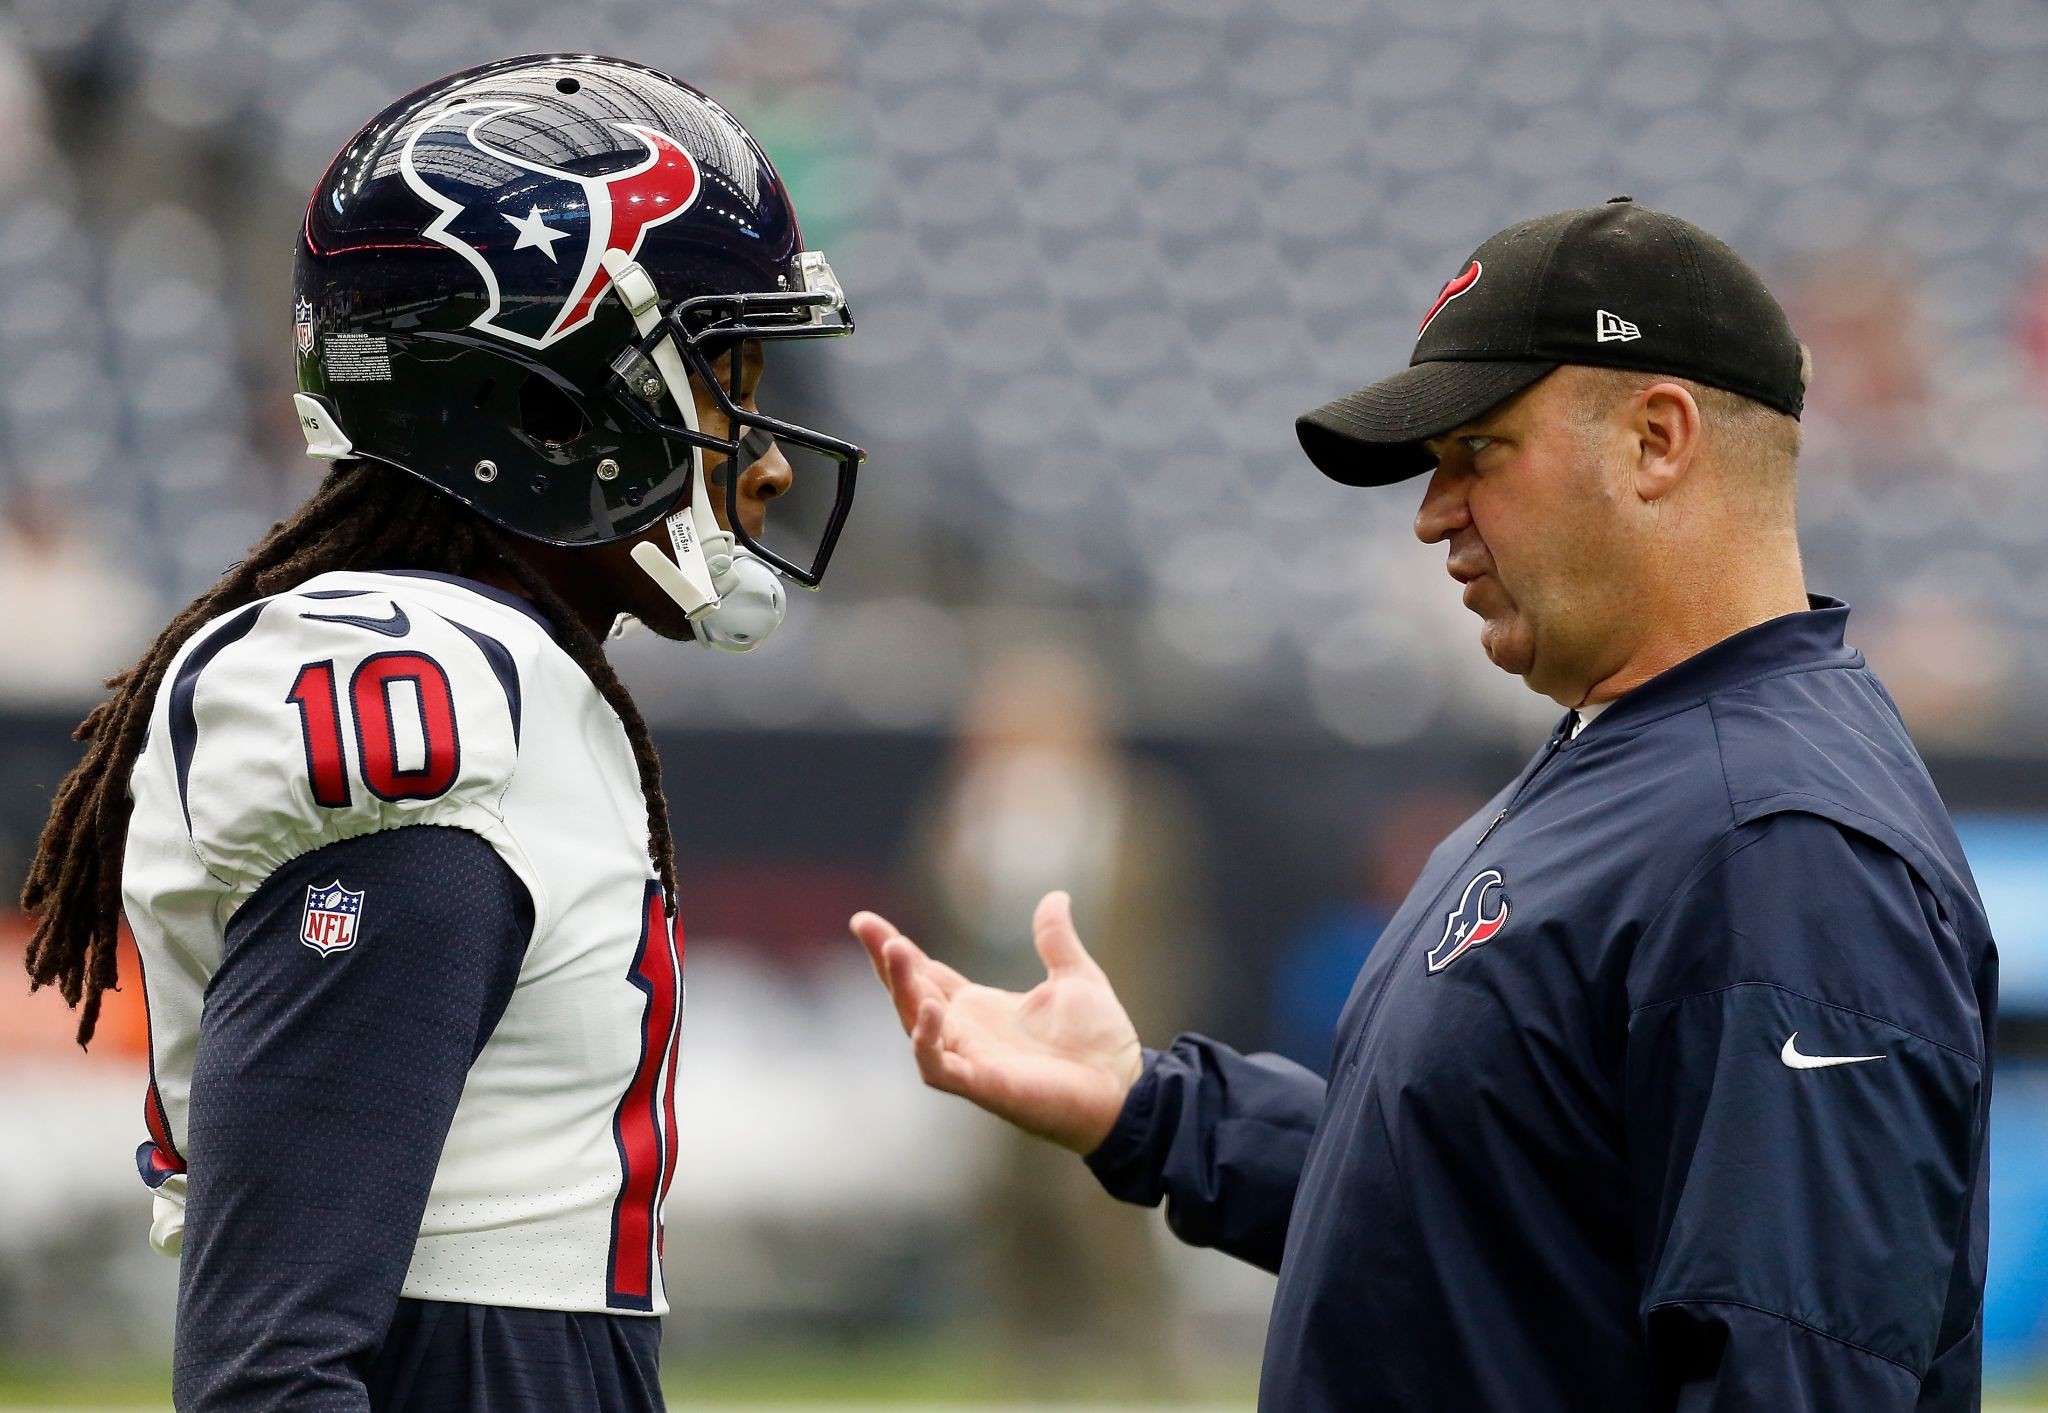 McClain's Mailbag: More of the same from DeAndre Hopkins and Bill O'Brien?